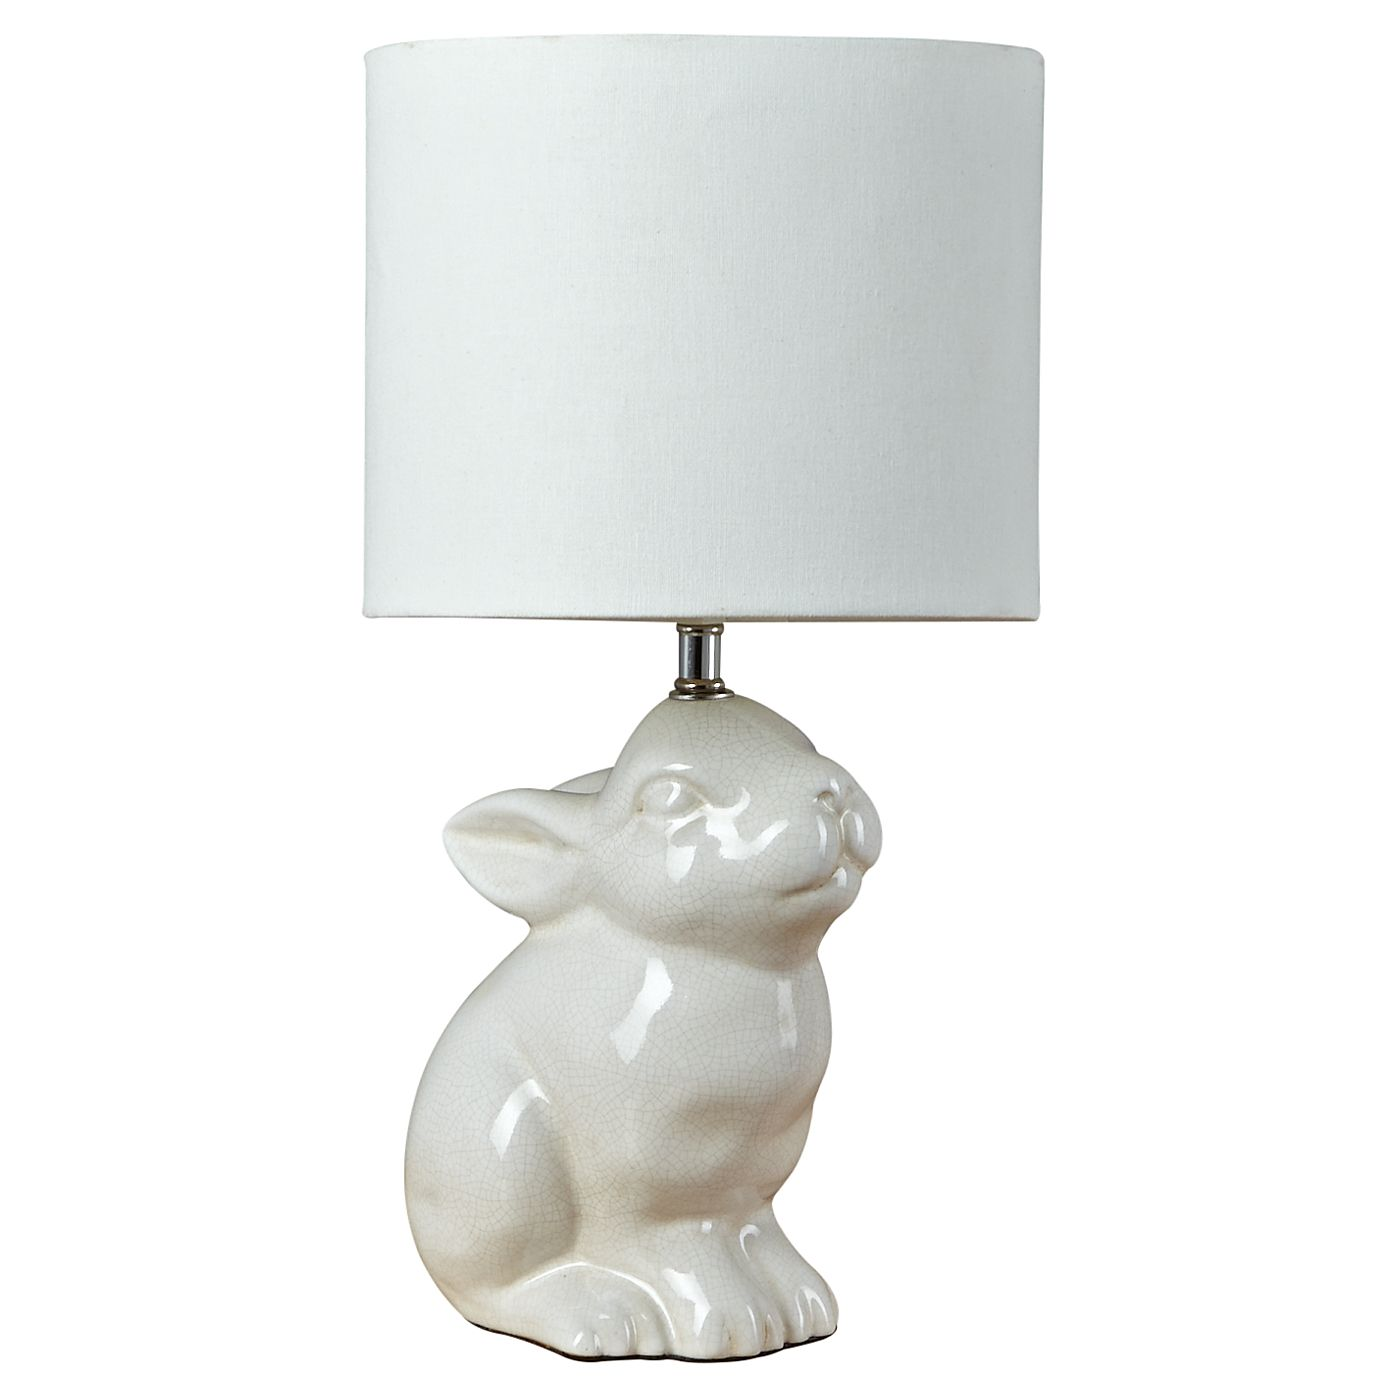 rabbit a uk light bunny porcelain whole lamp lot bunnylamp suckuk media with led suck